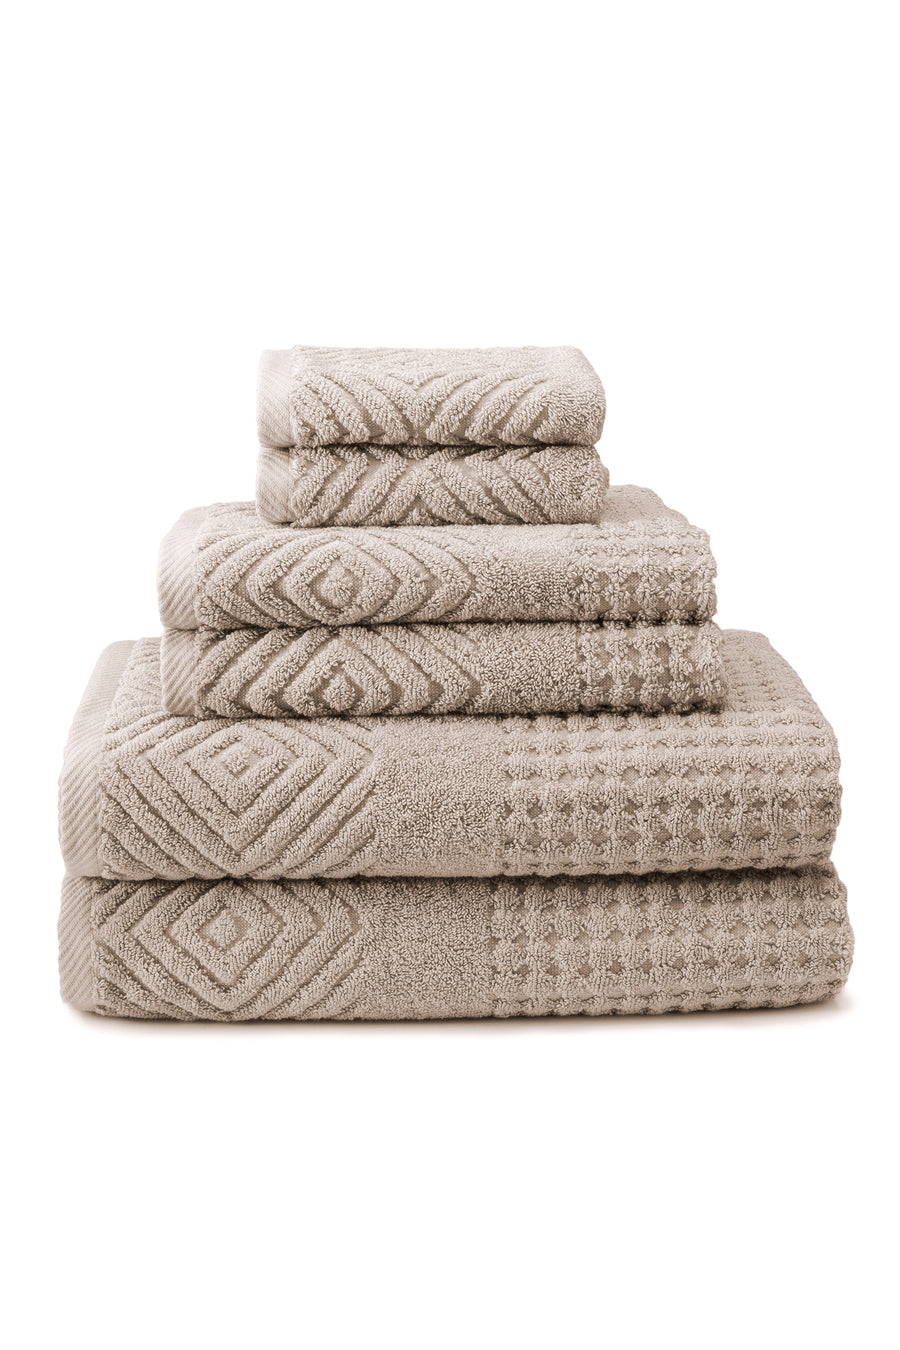 Tansy - Organic Cotton Jacquard Bath Towels - 6 Piece Set - TexereSilk